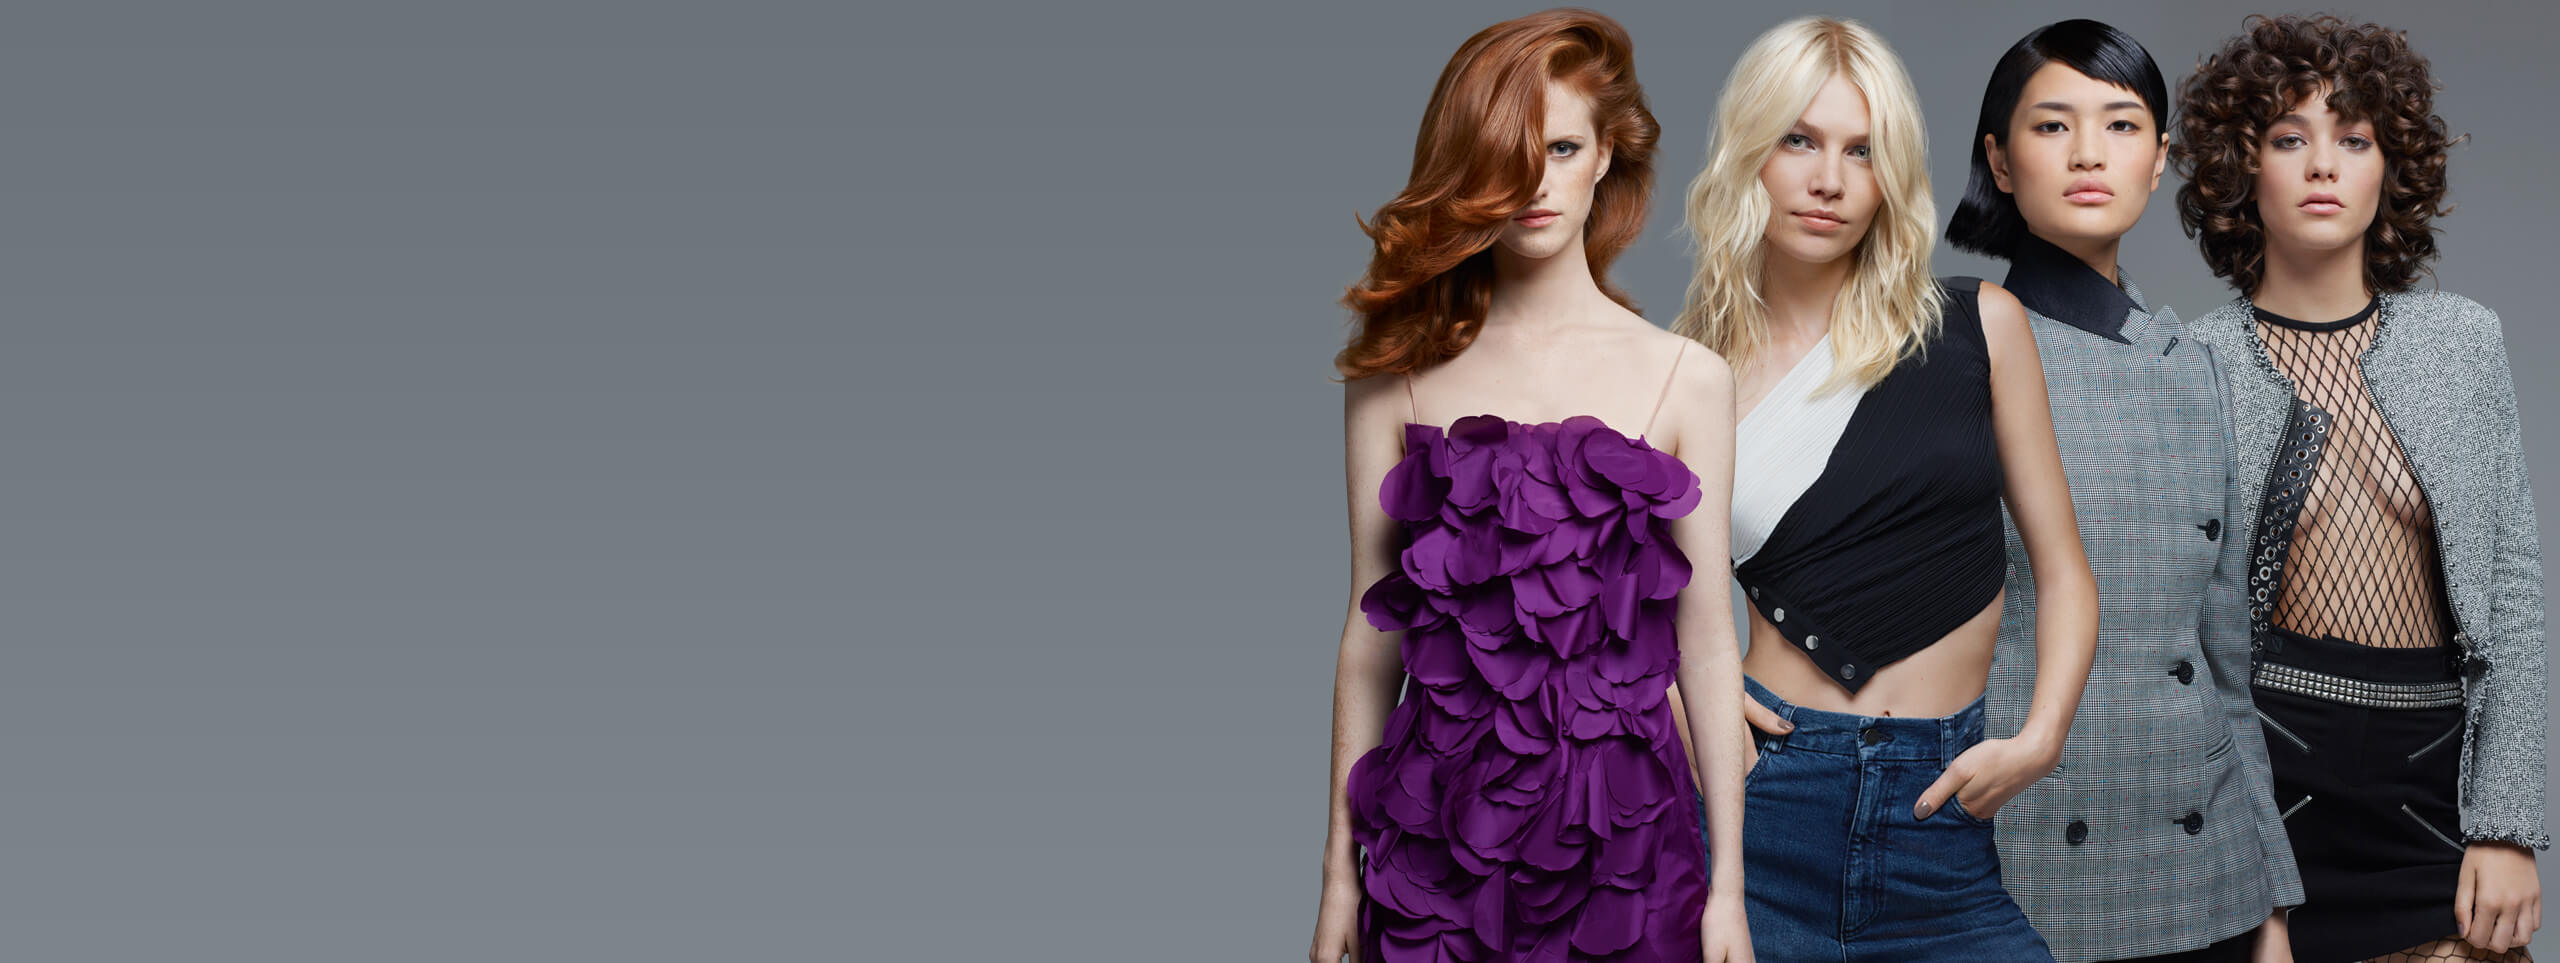 Trendlooks_2017_Collage-2560x963